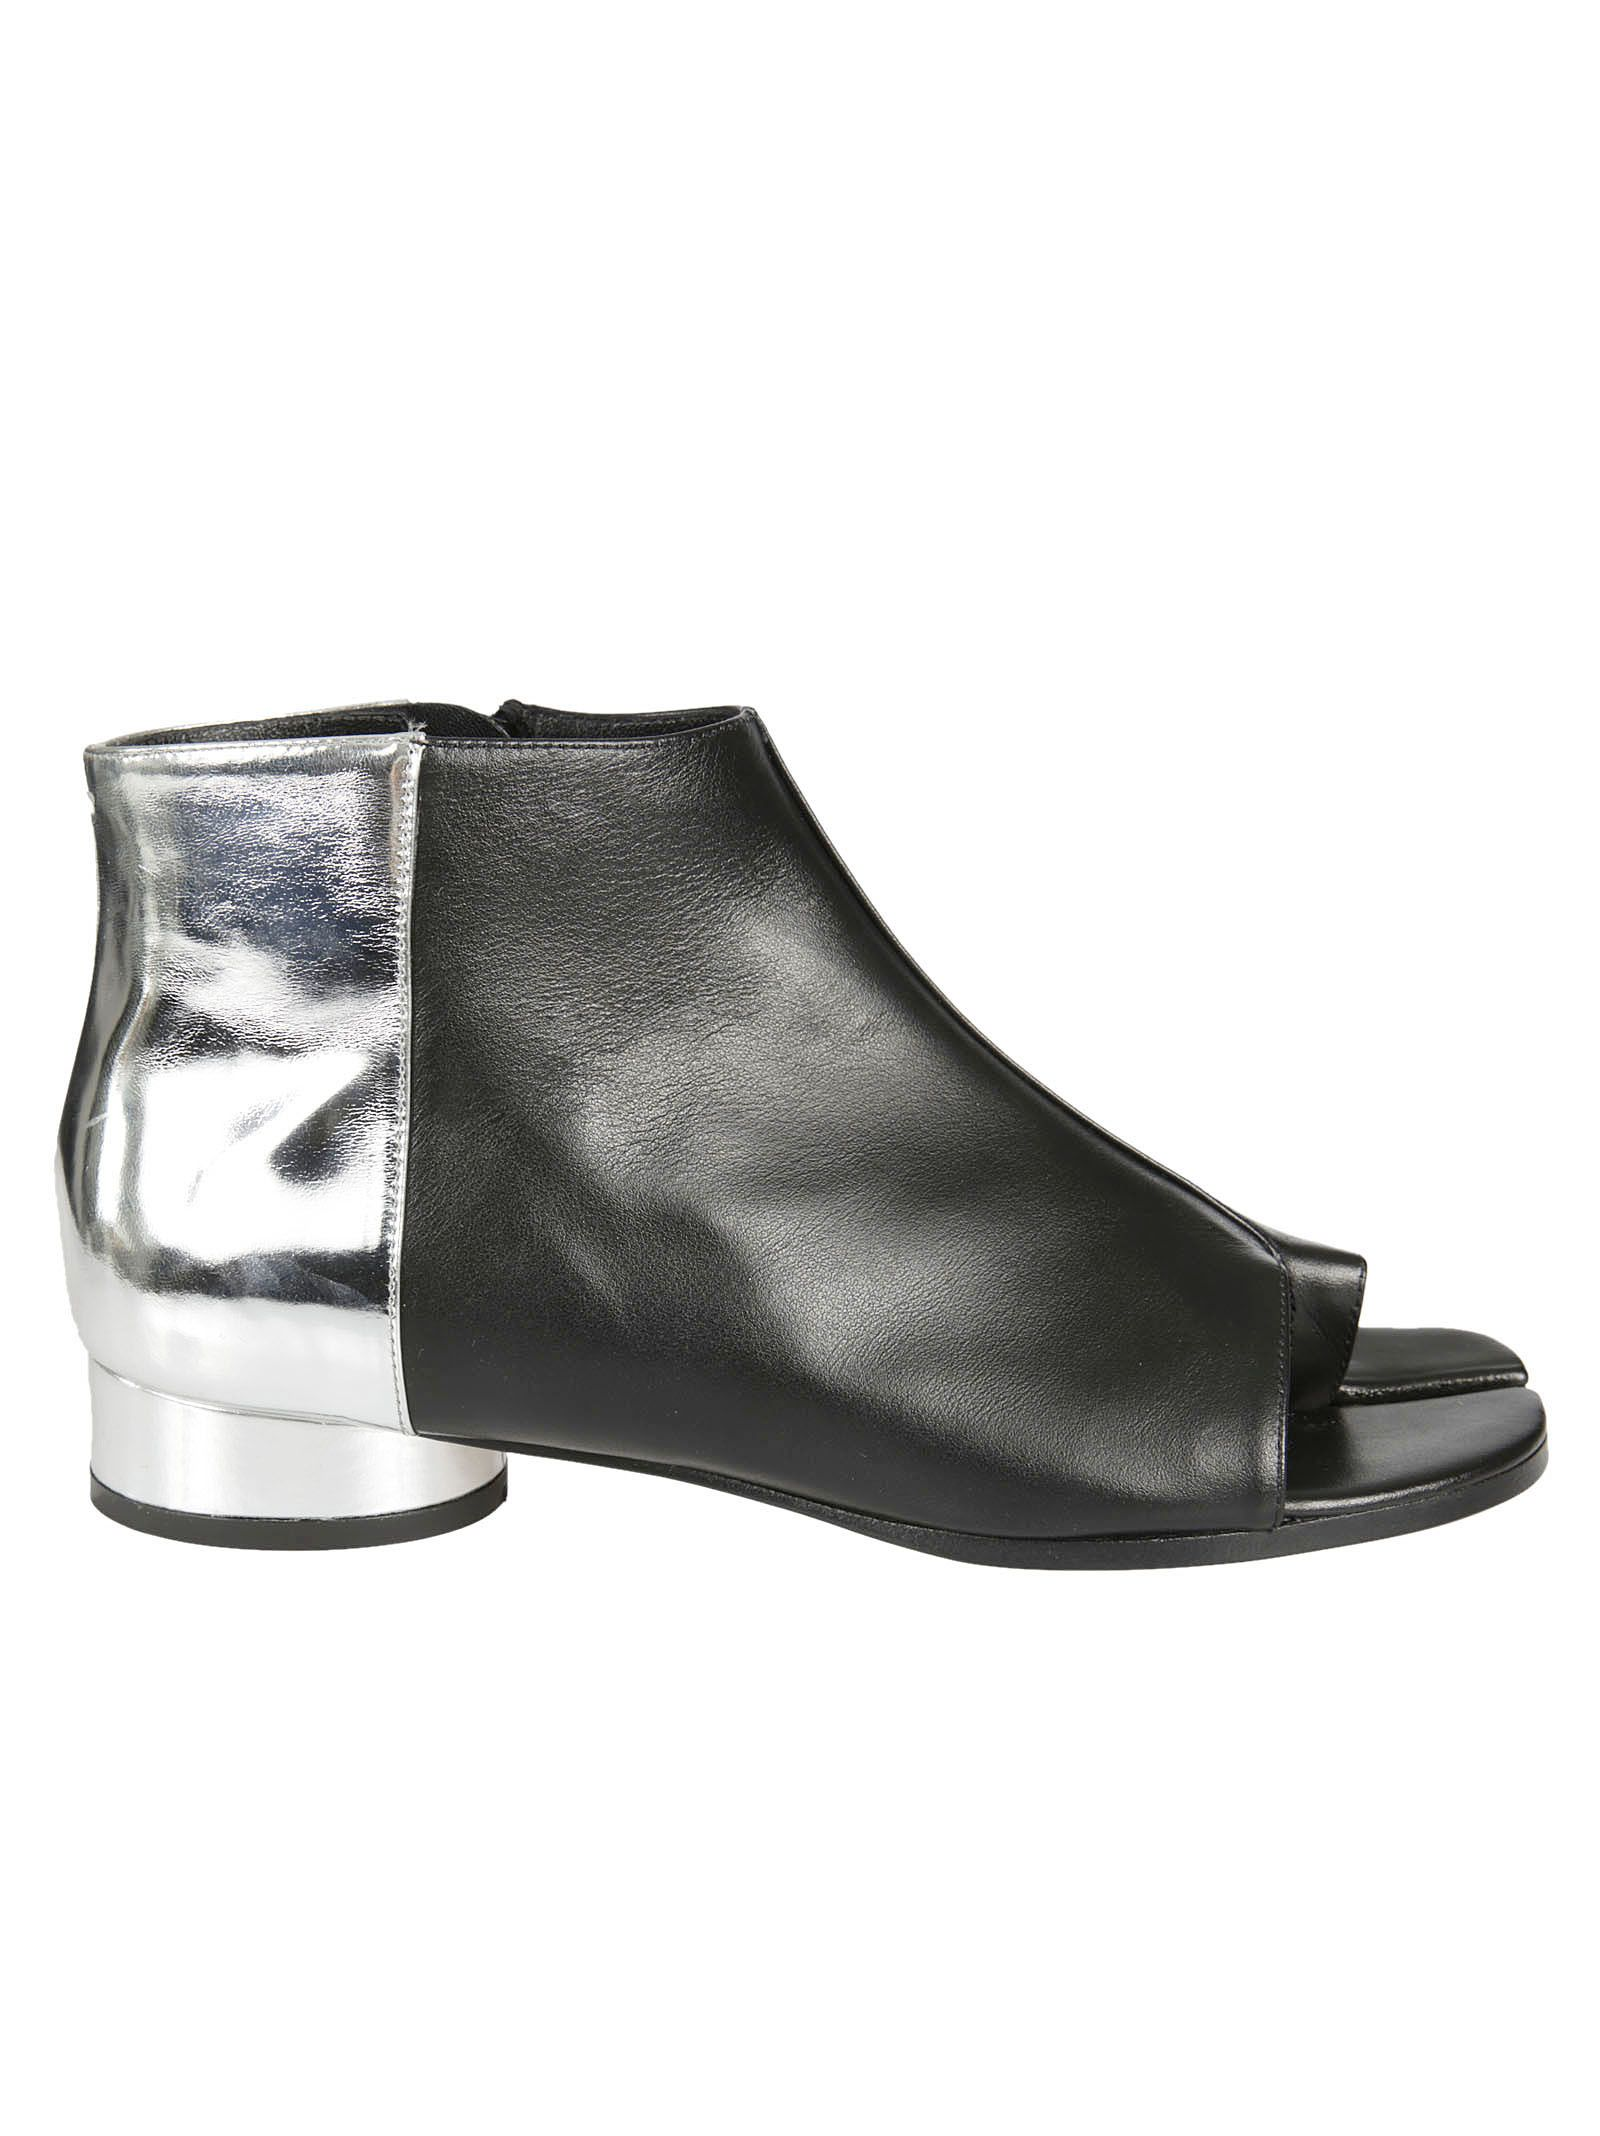 Maison Margiela Open Toe Color Block Boots